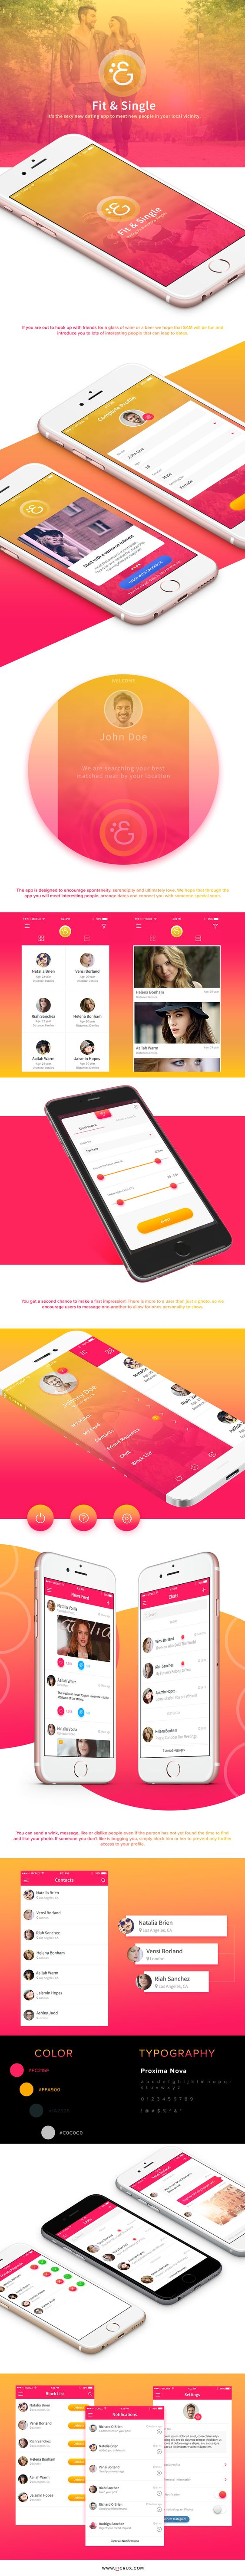 Fit & Single - Dating App on Behance